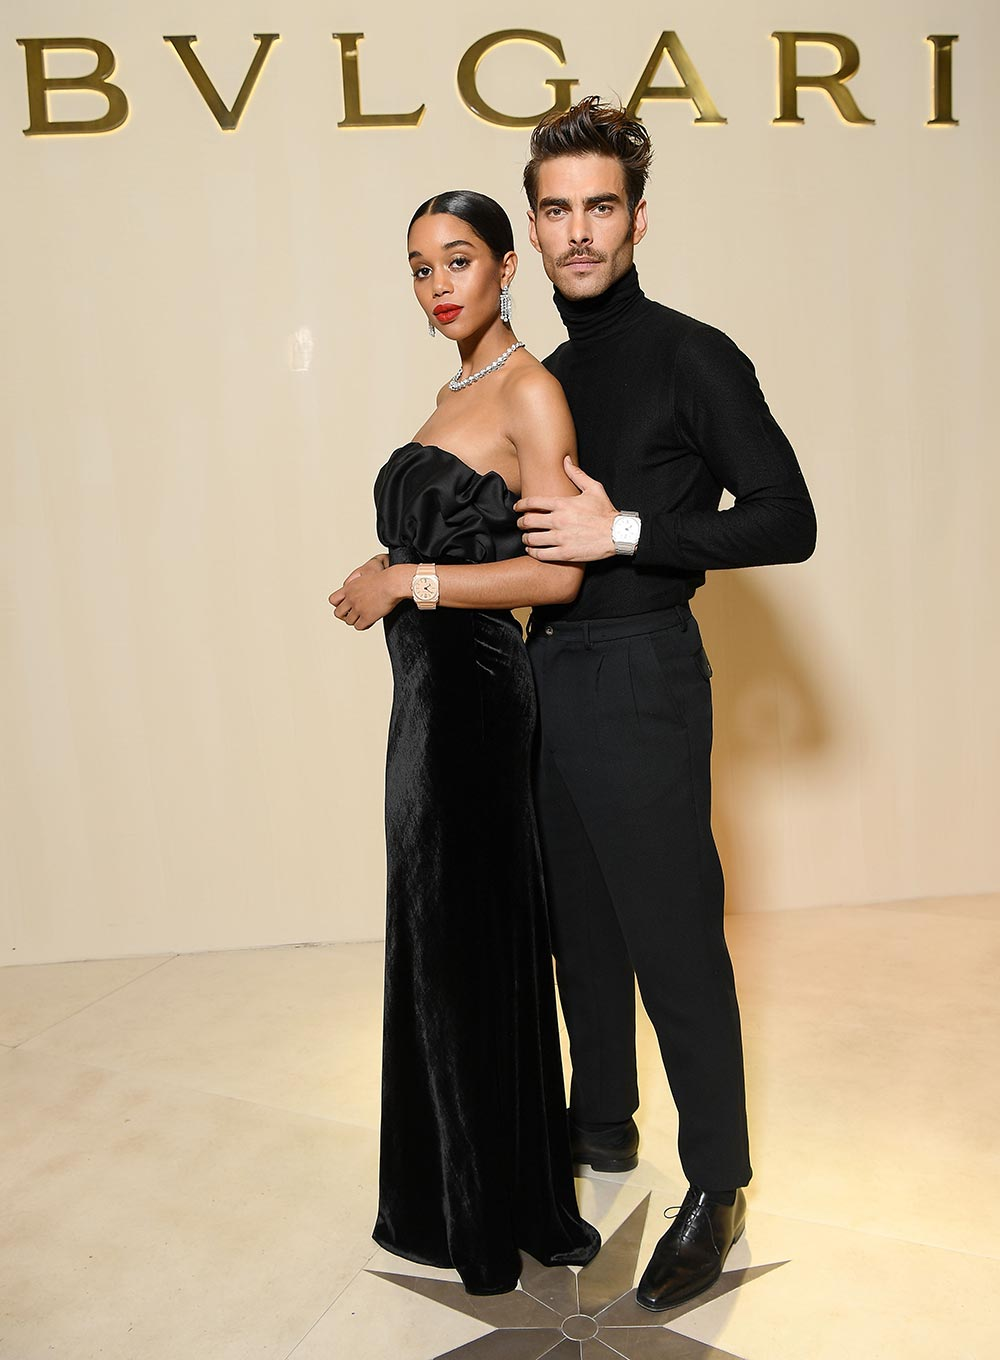 Bulgari Basel Press Party - Laura Harrier Jon Kortajarena - Hair & makeup Massimo Serini